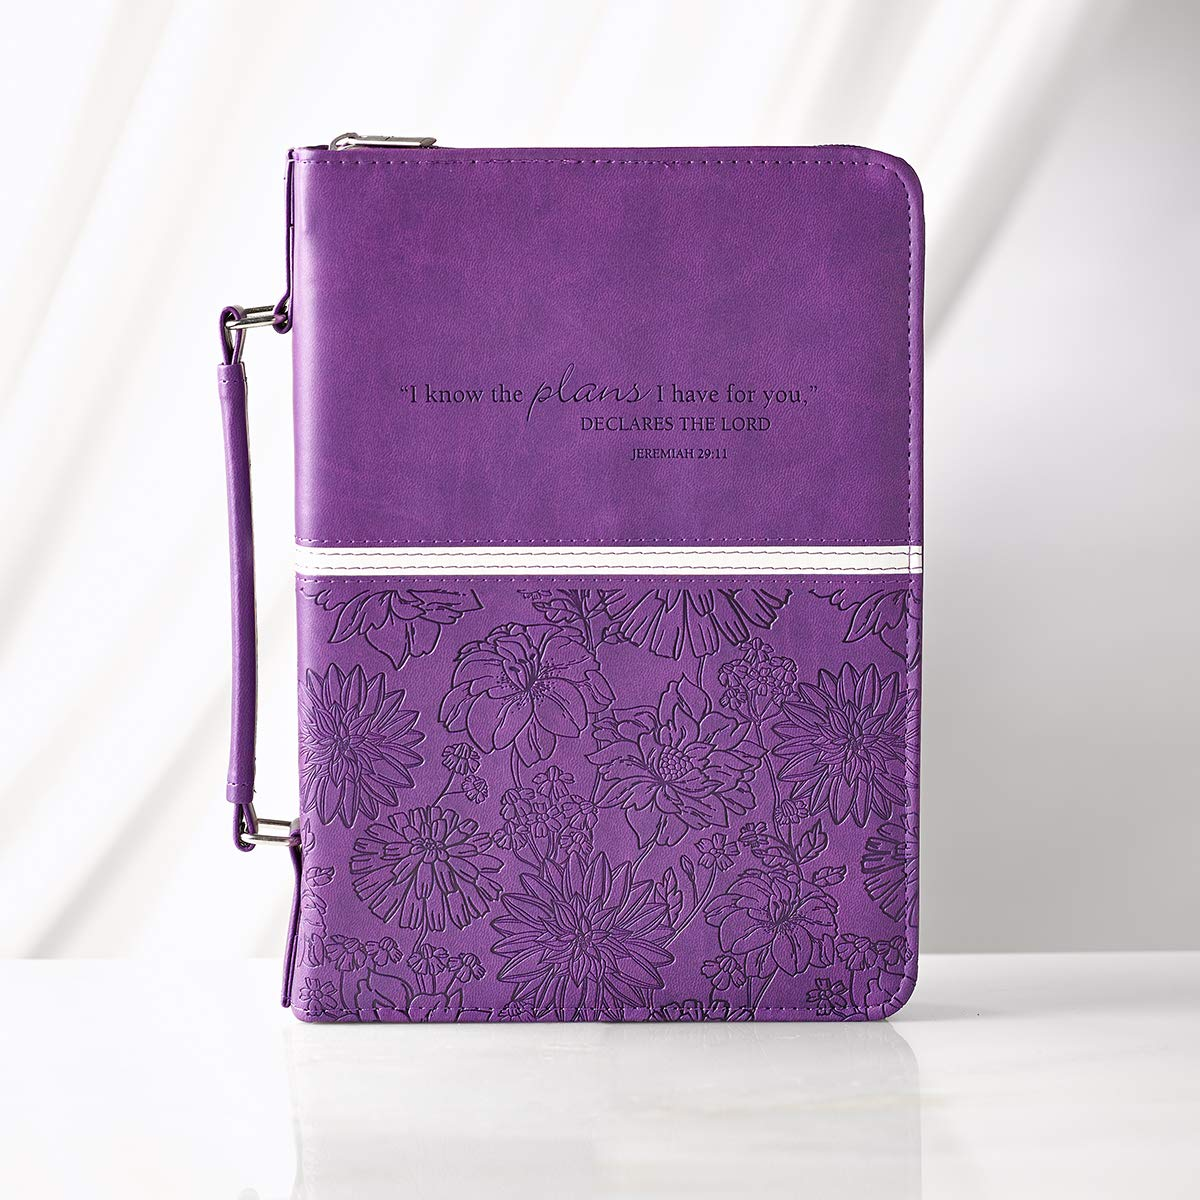 Amazon.com: Floral Embossed Bible / Book Cover - Jeremiah 29:11 (Large,  Purple) (6006937109643): Christian Art Gifts: Books